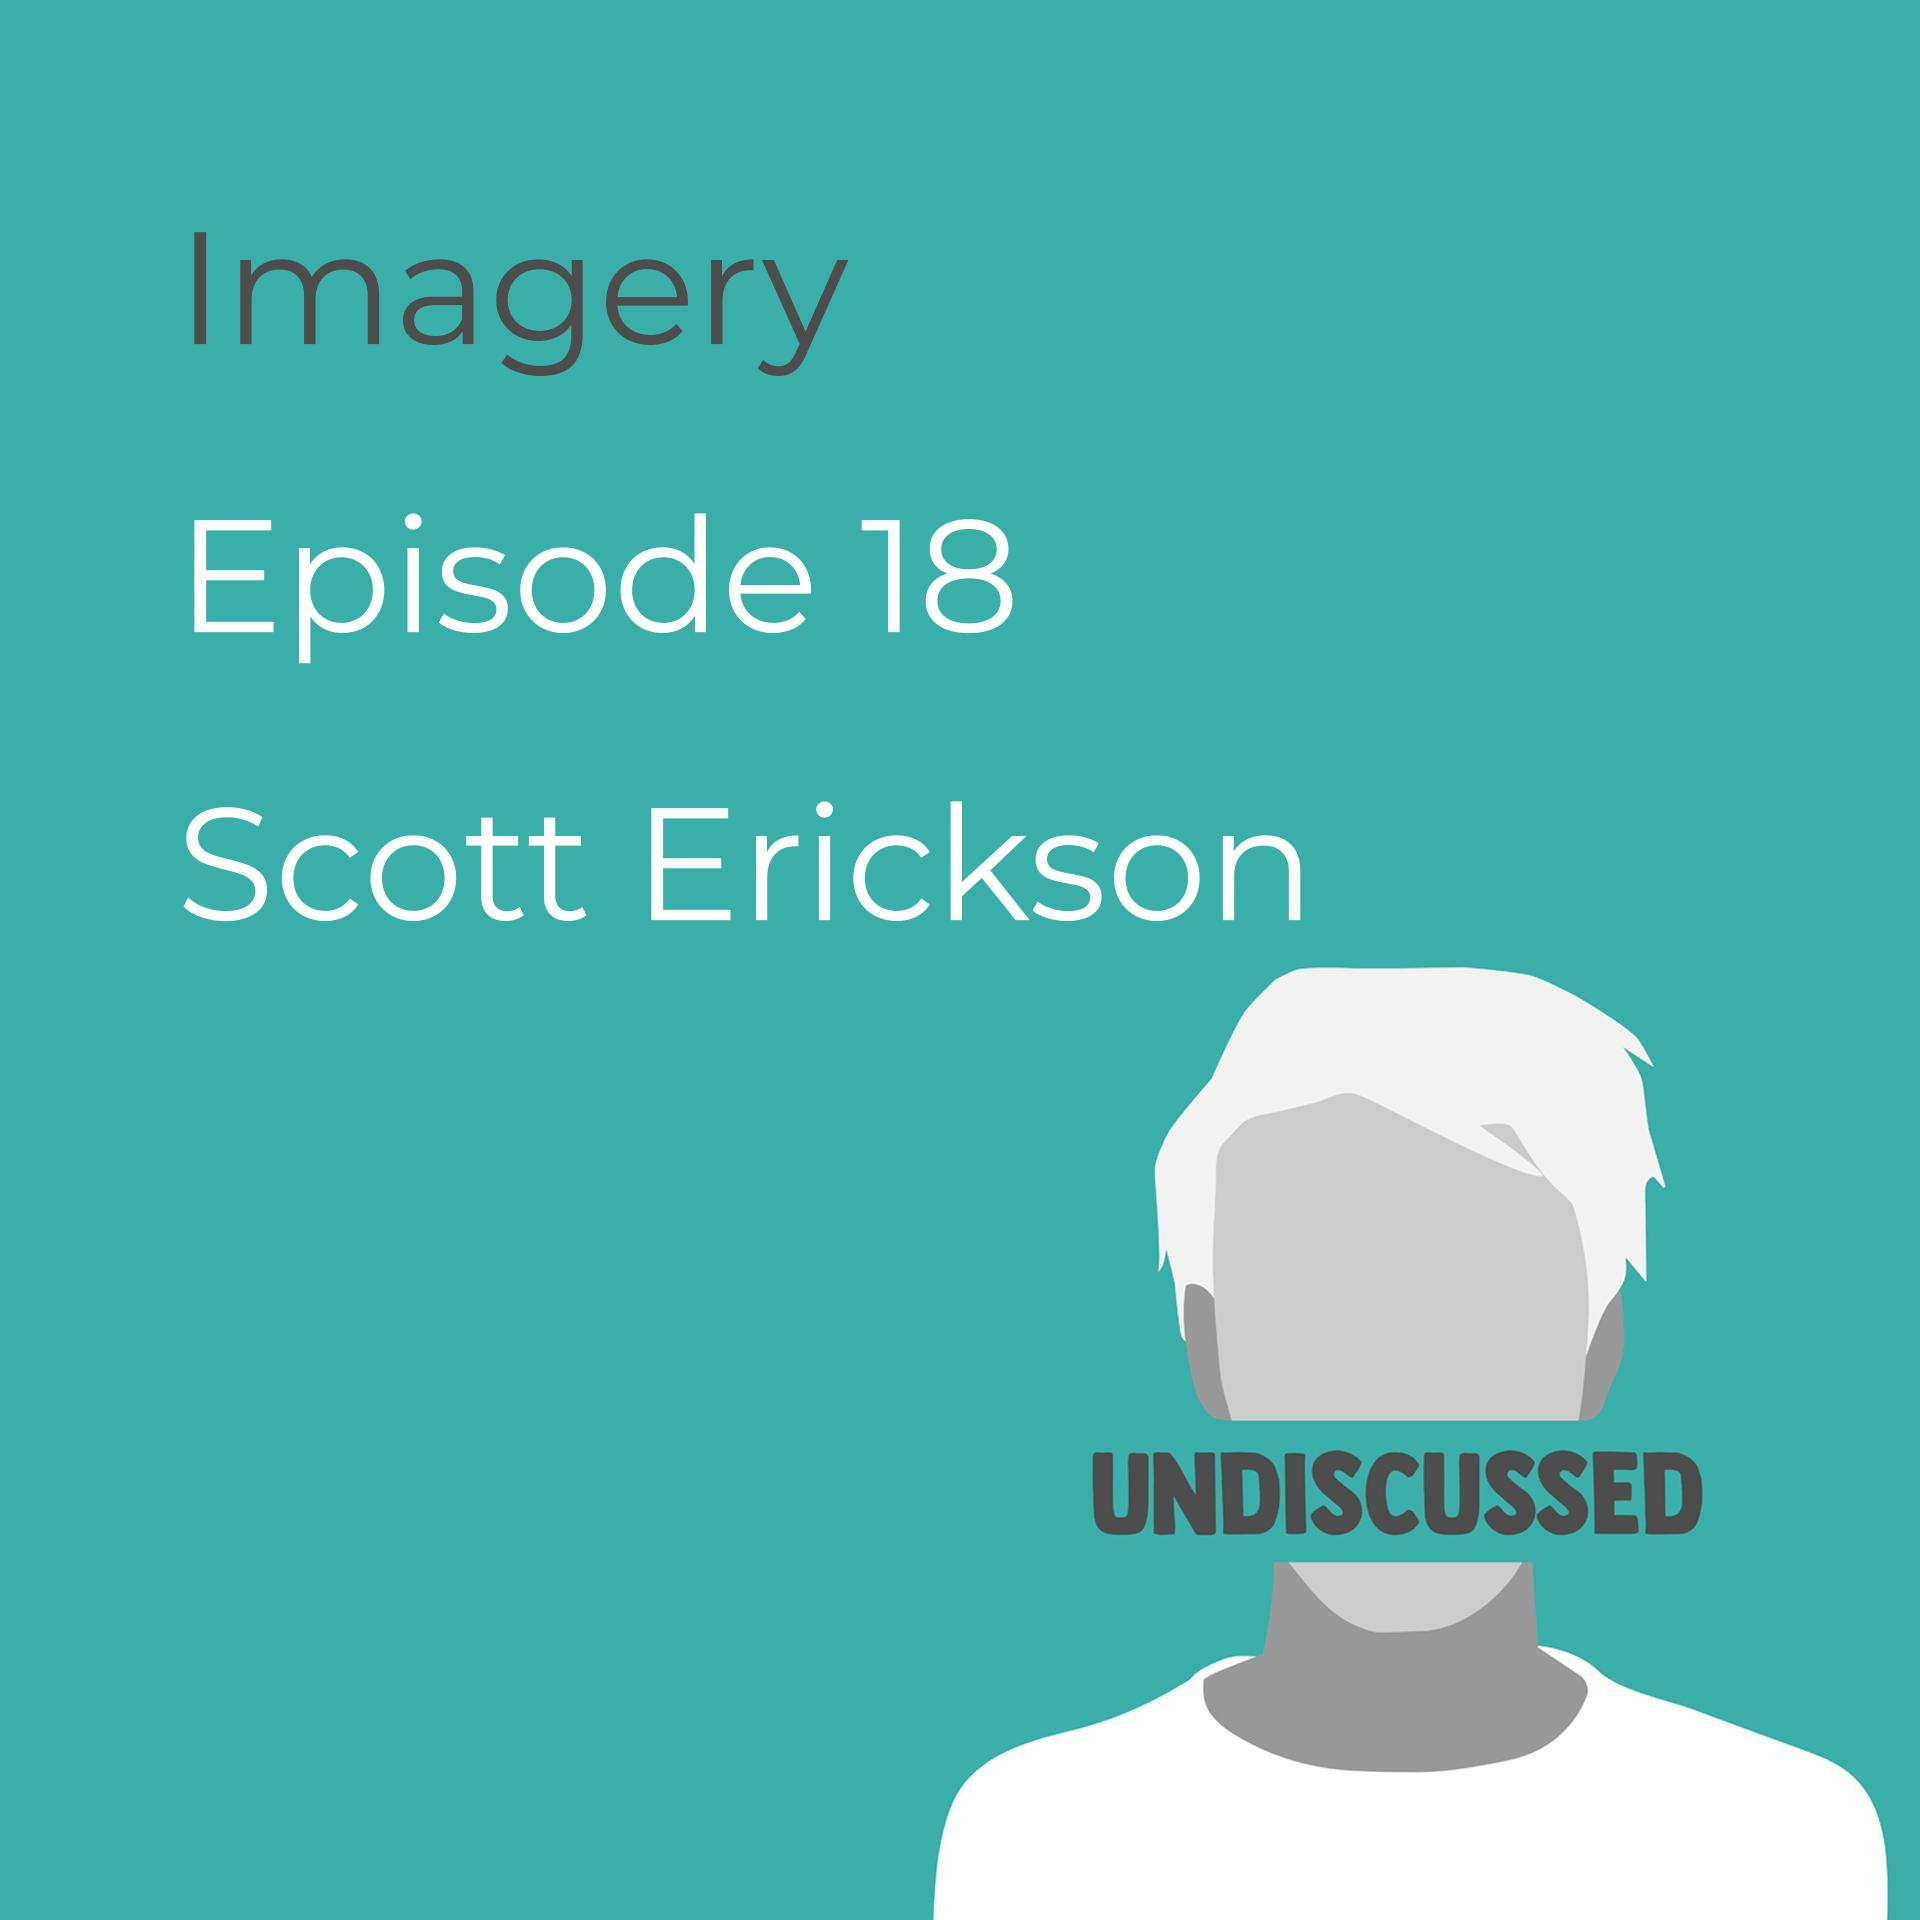 Episode 18 - Imagery with Scott Erickson